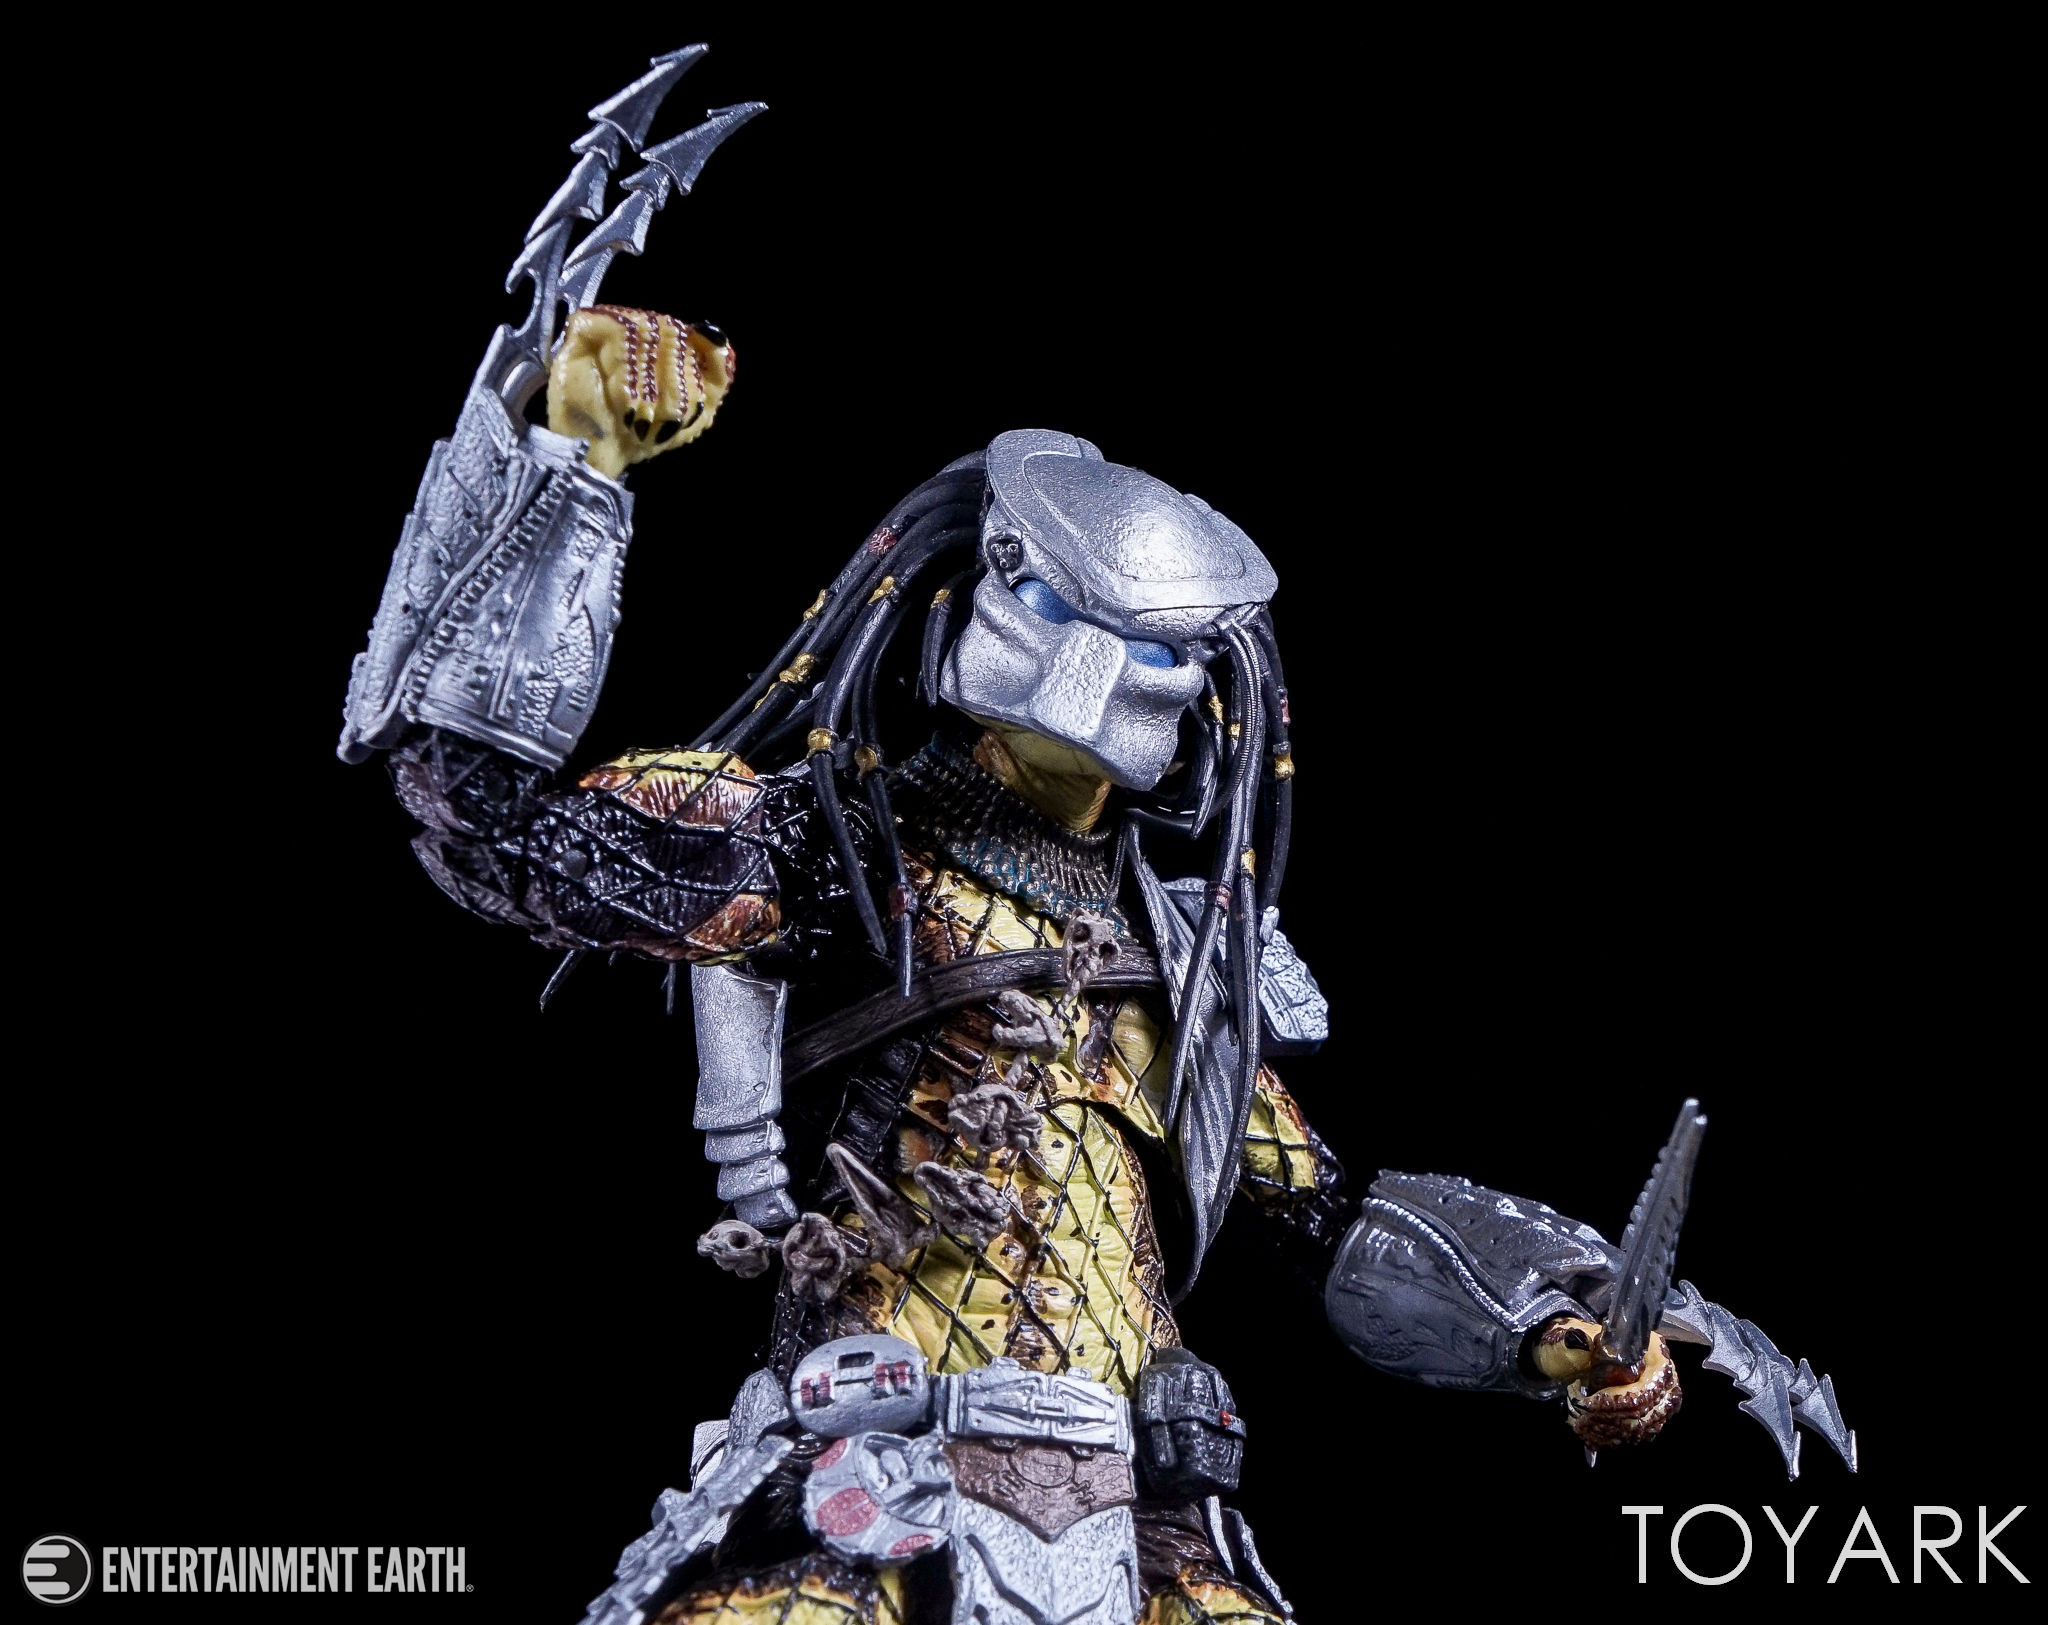 http://news.toyark.com/wp-content/uploads/sites/4/2017/04/NECA-Youngblood-Predator-022.jpg